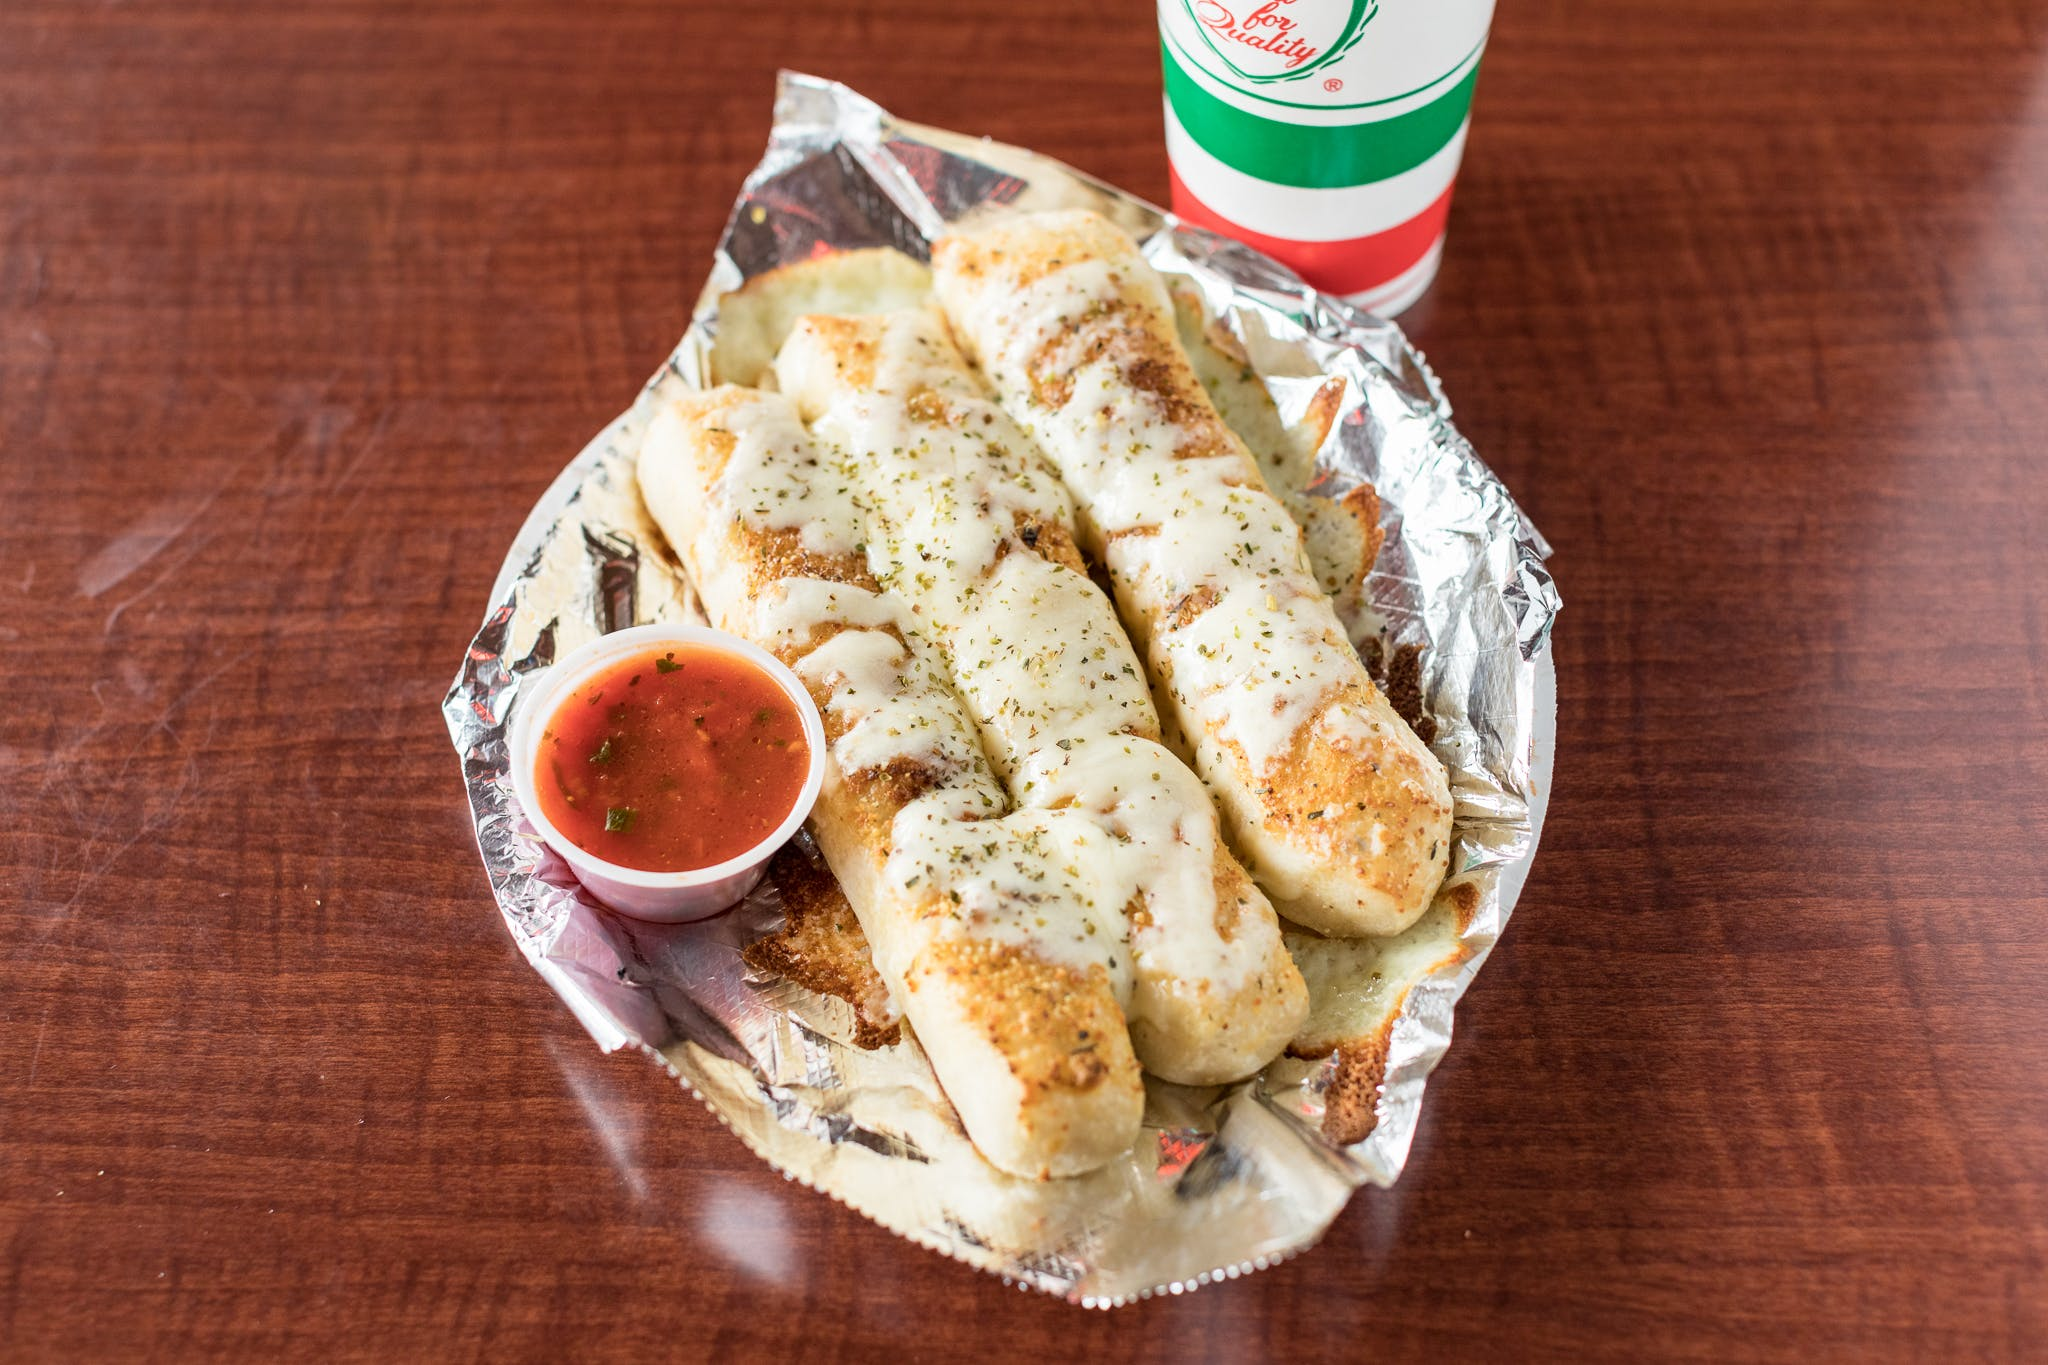 Cheesy Breadsticks from Johnny's Pizza Shop in Eau Claire, WI